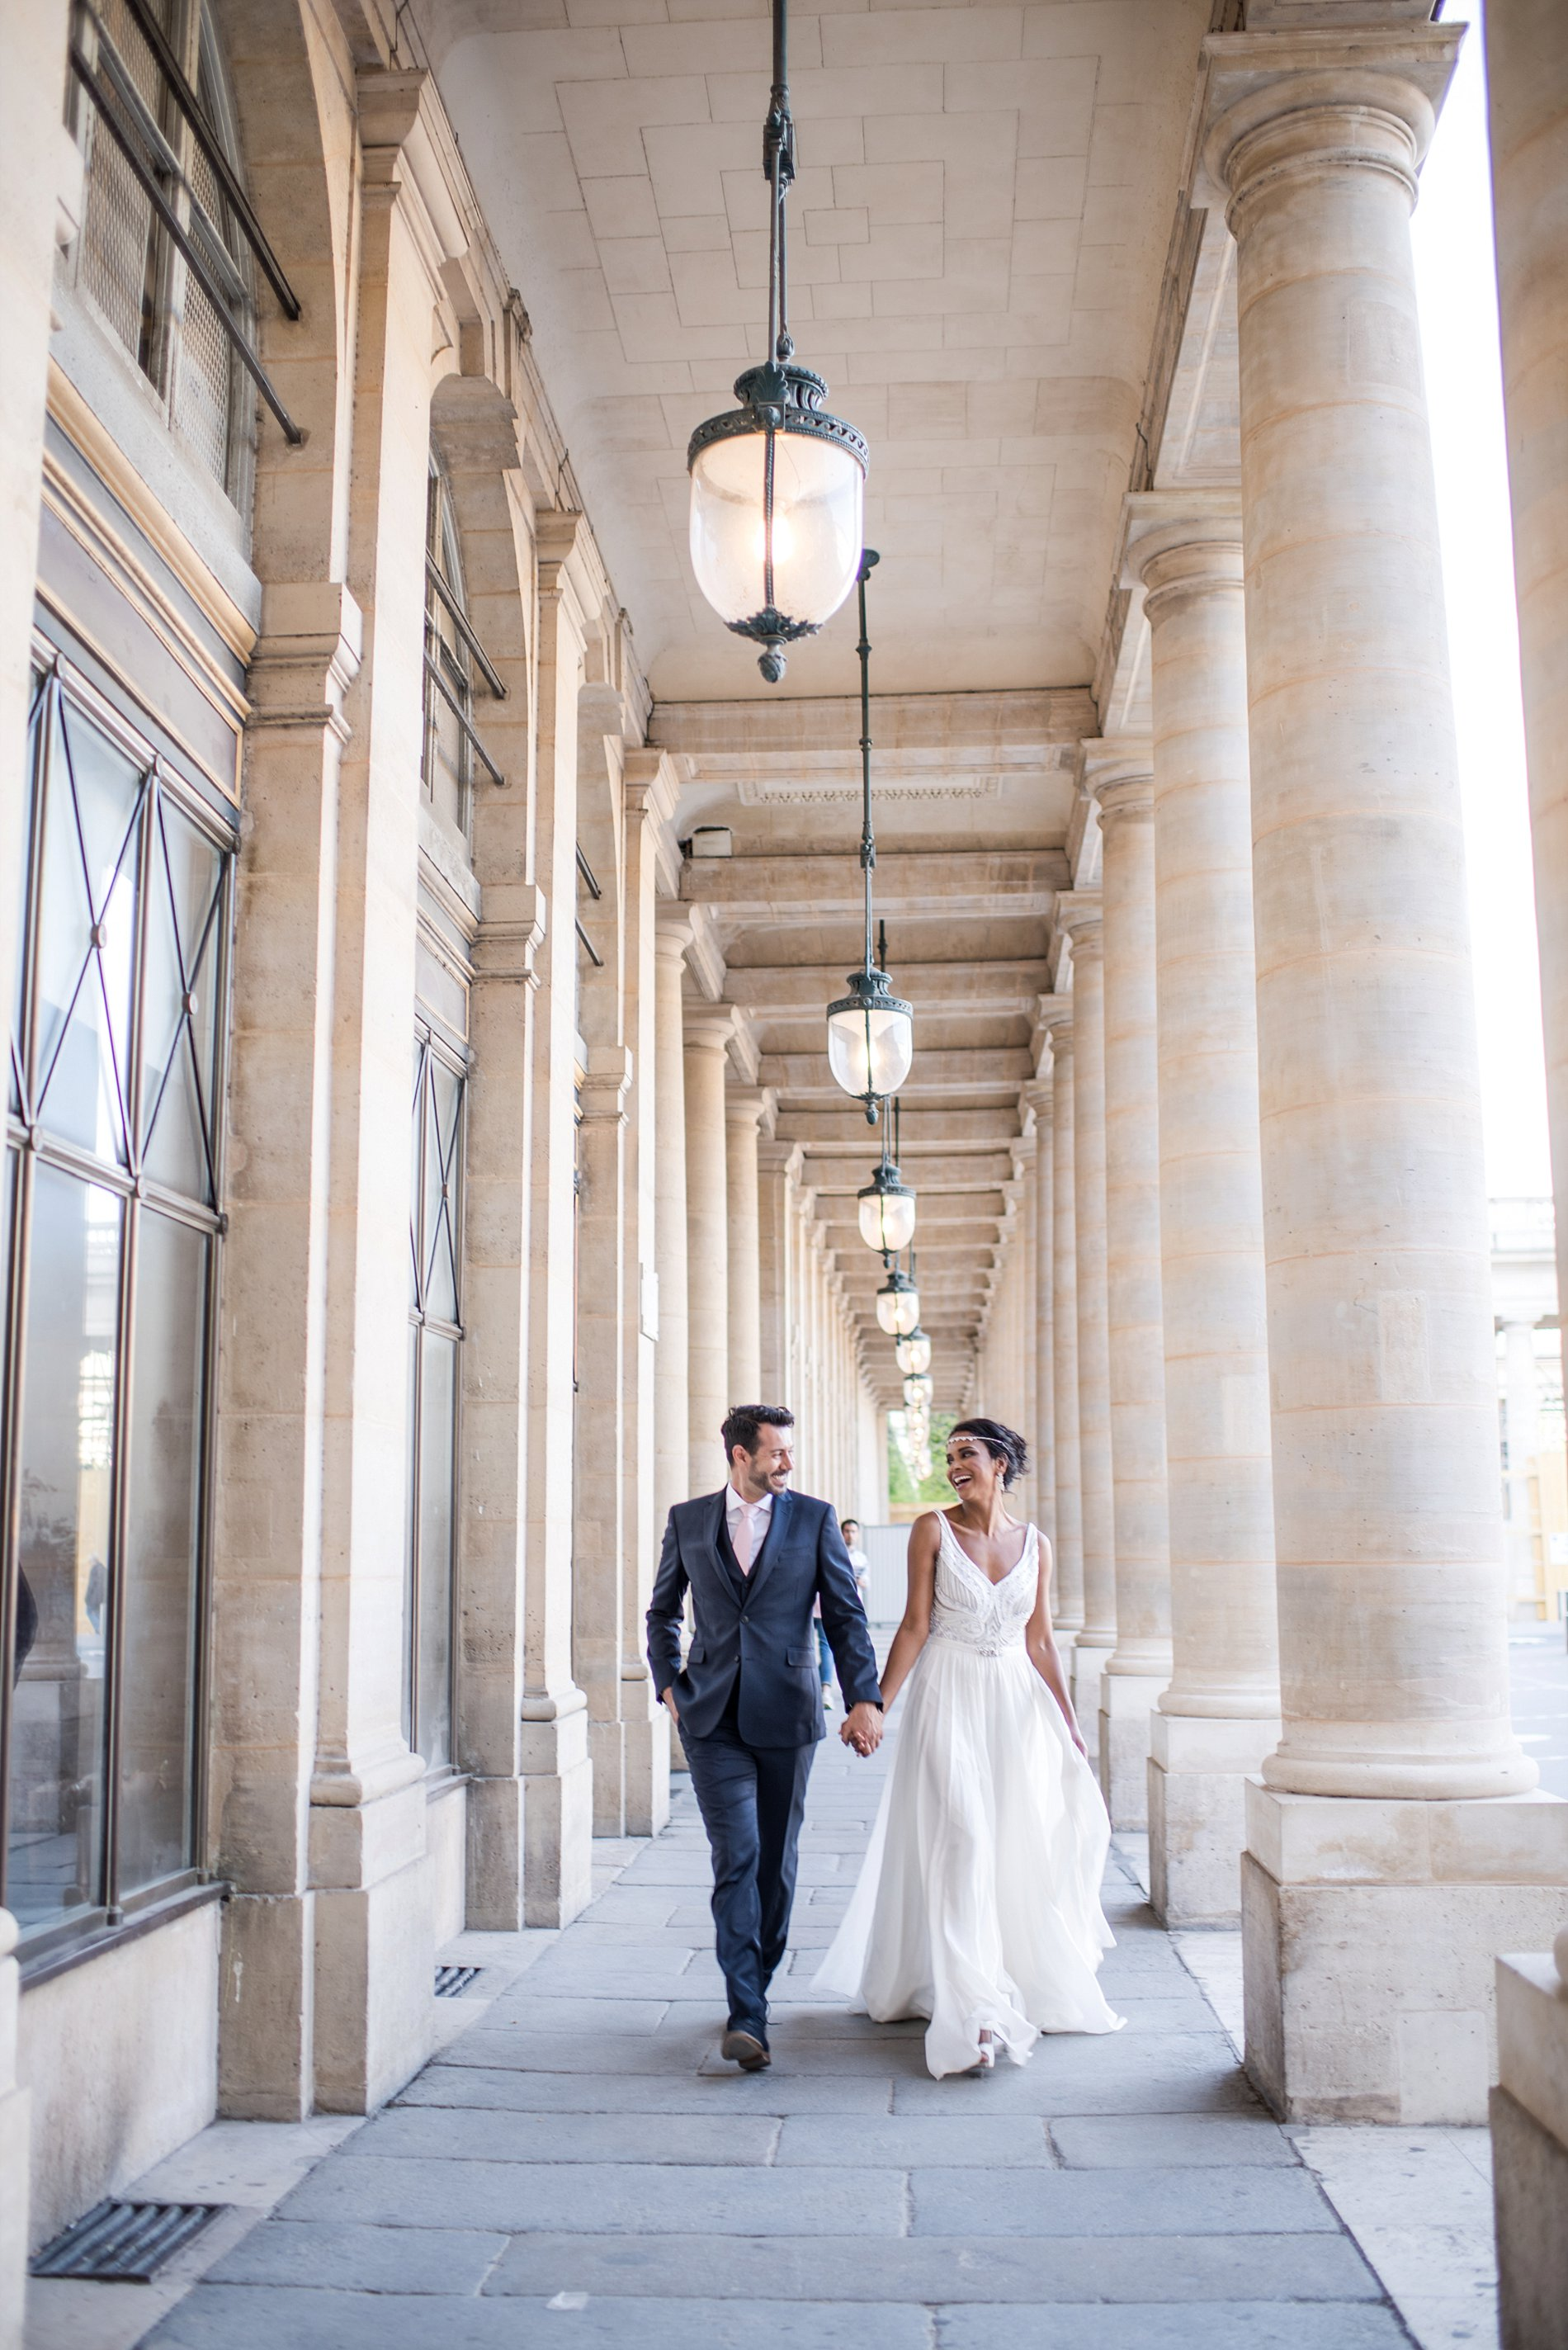 Paris elopement wedding photography by Jane Beadnell Photography-443